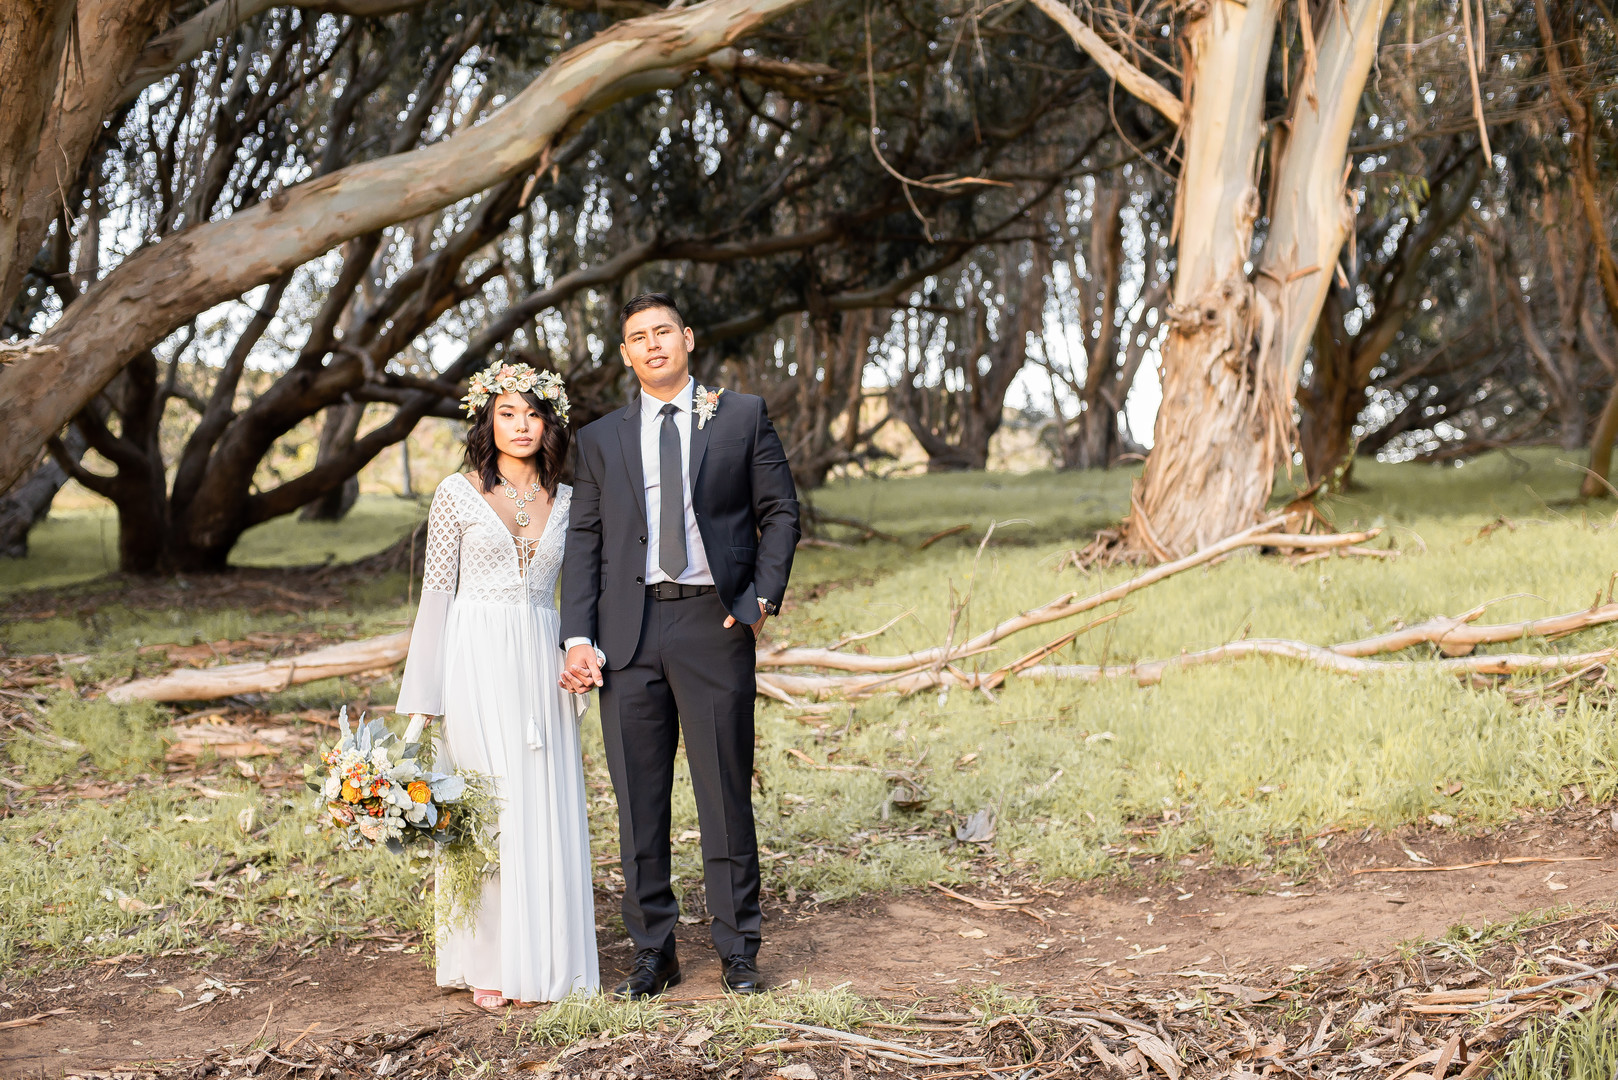 www.santabarbarawedding.com   Staci and Michael Photography   Montana de Oro State Park   EverAfter Wood Floral   Express   Makeup by Madisen Wickliffe   Bride and groom